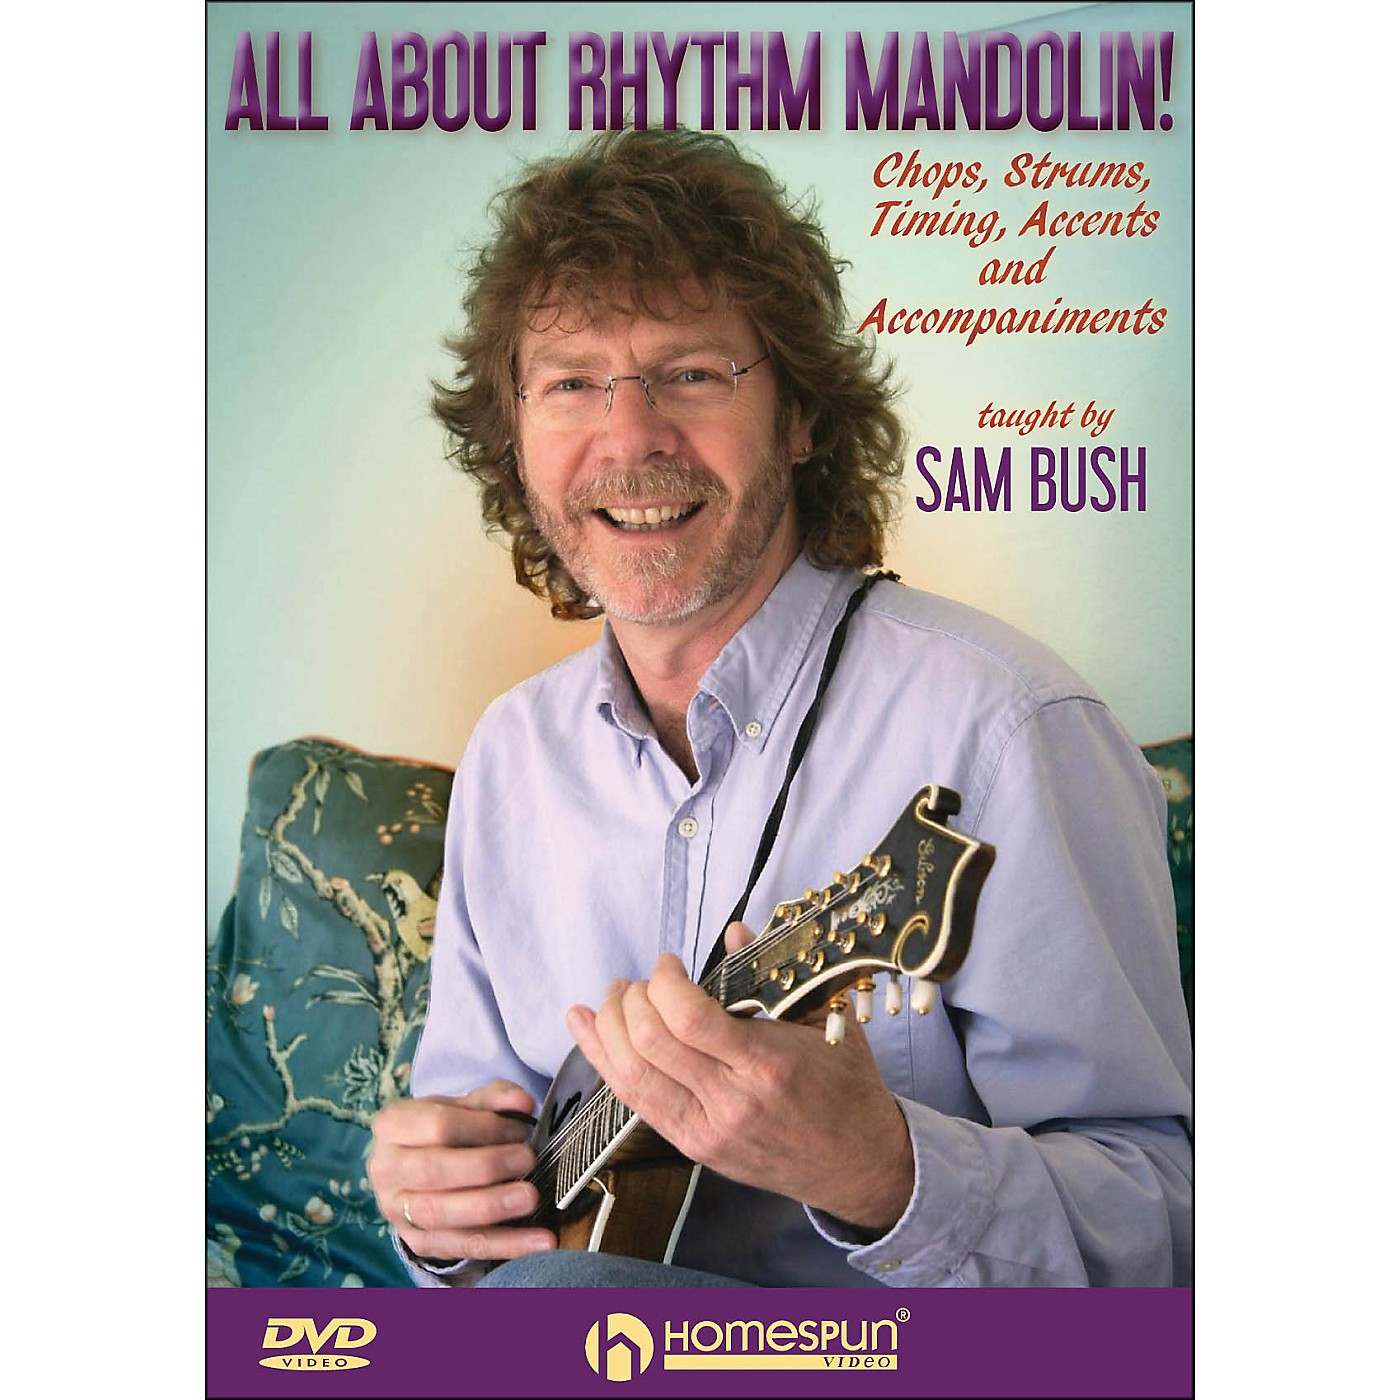 Homespun All About Rhythm Mandolin Chops Strums Timing Accents And Accompaniments DVD thumbnail